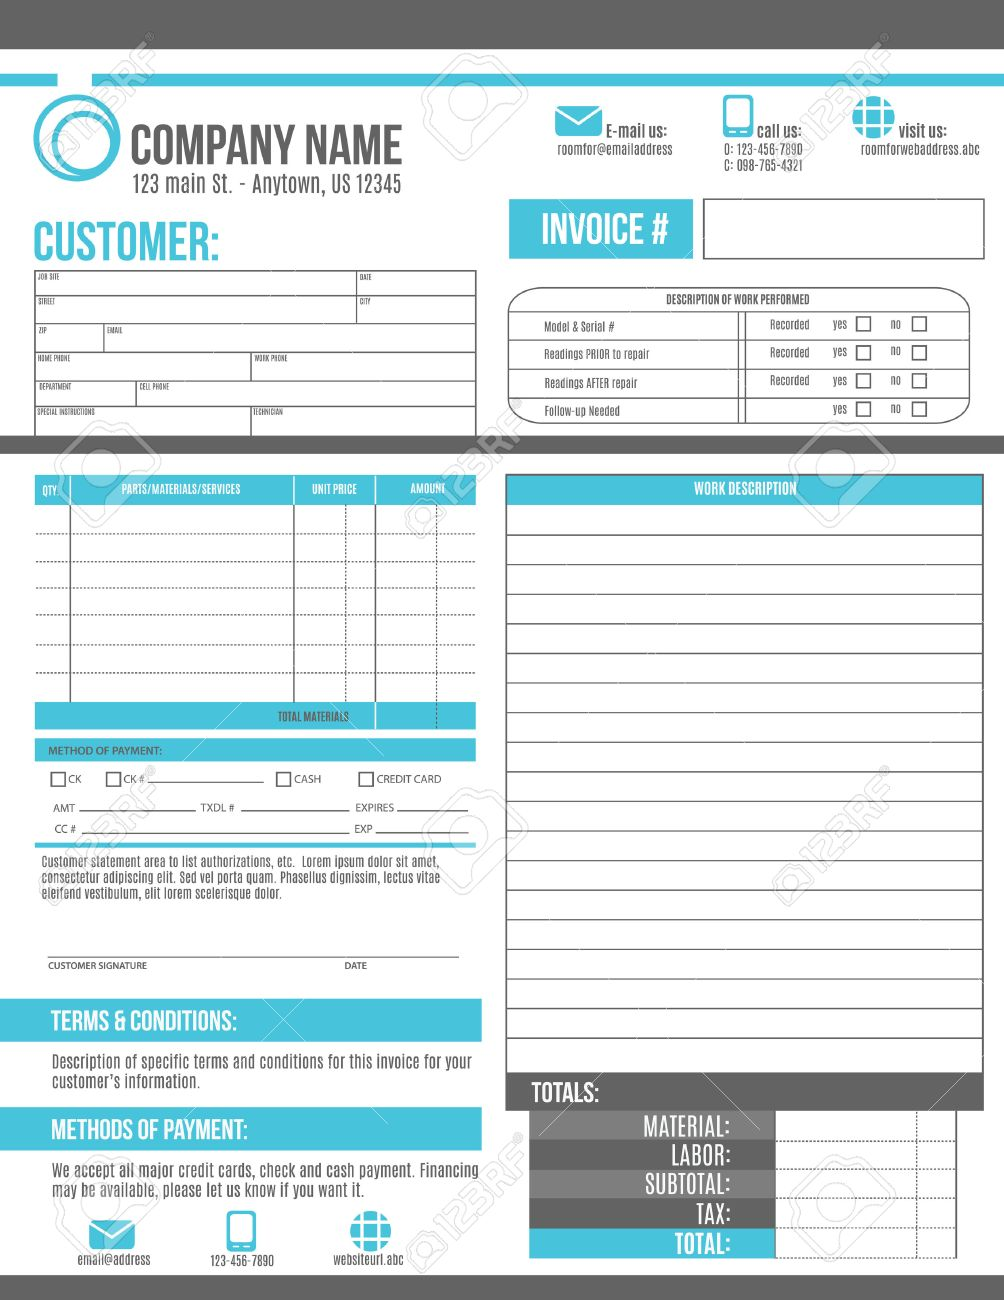 Customizable Invoice Template Design With Room For A Work Order - Customizable invoice